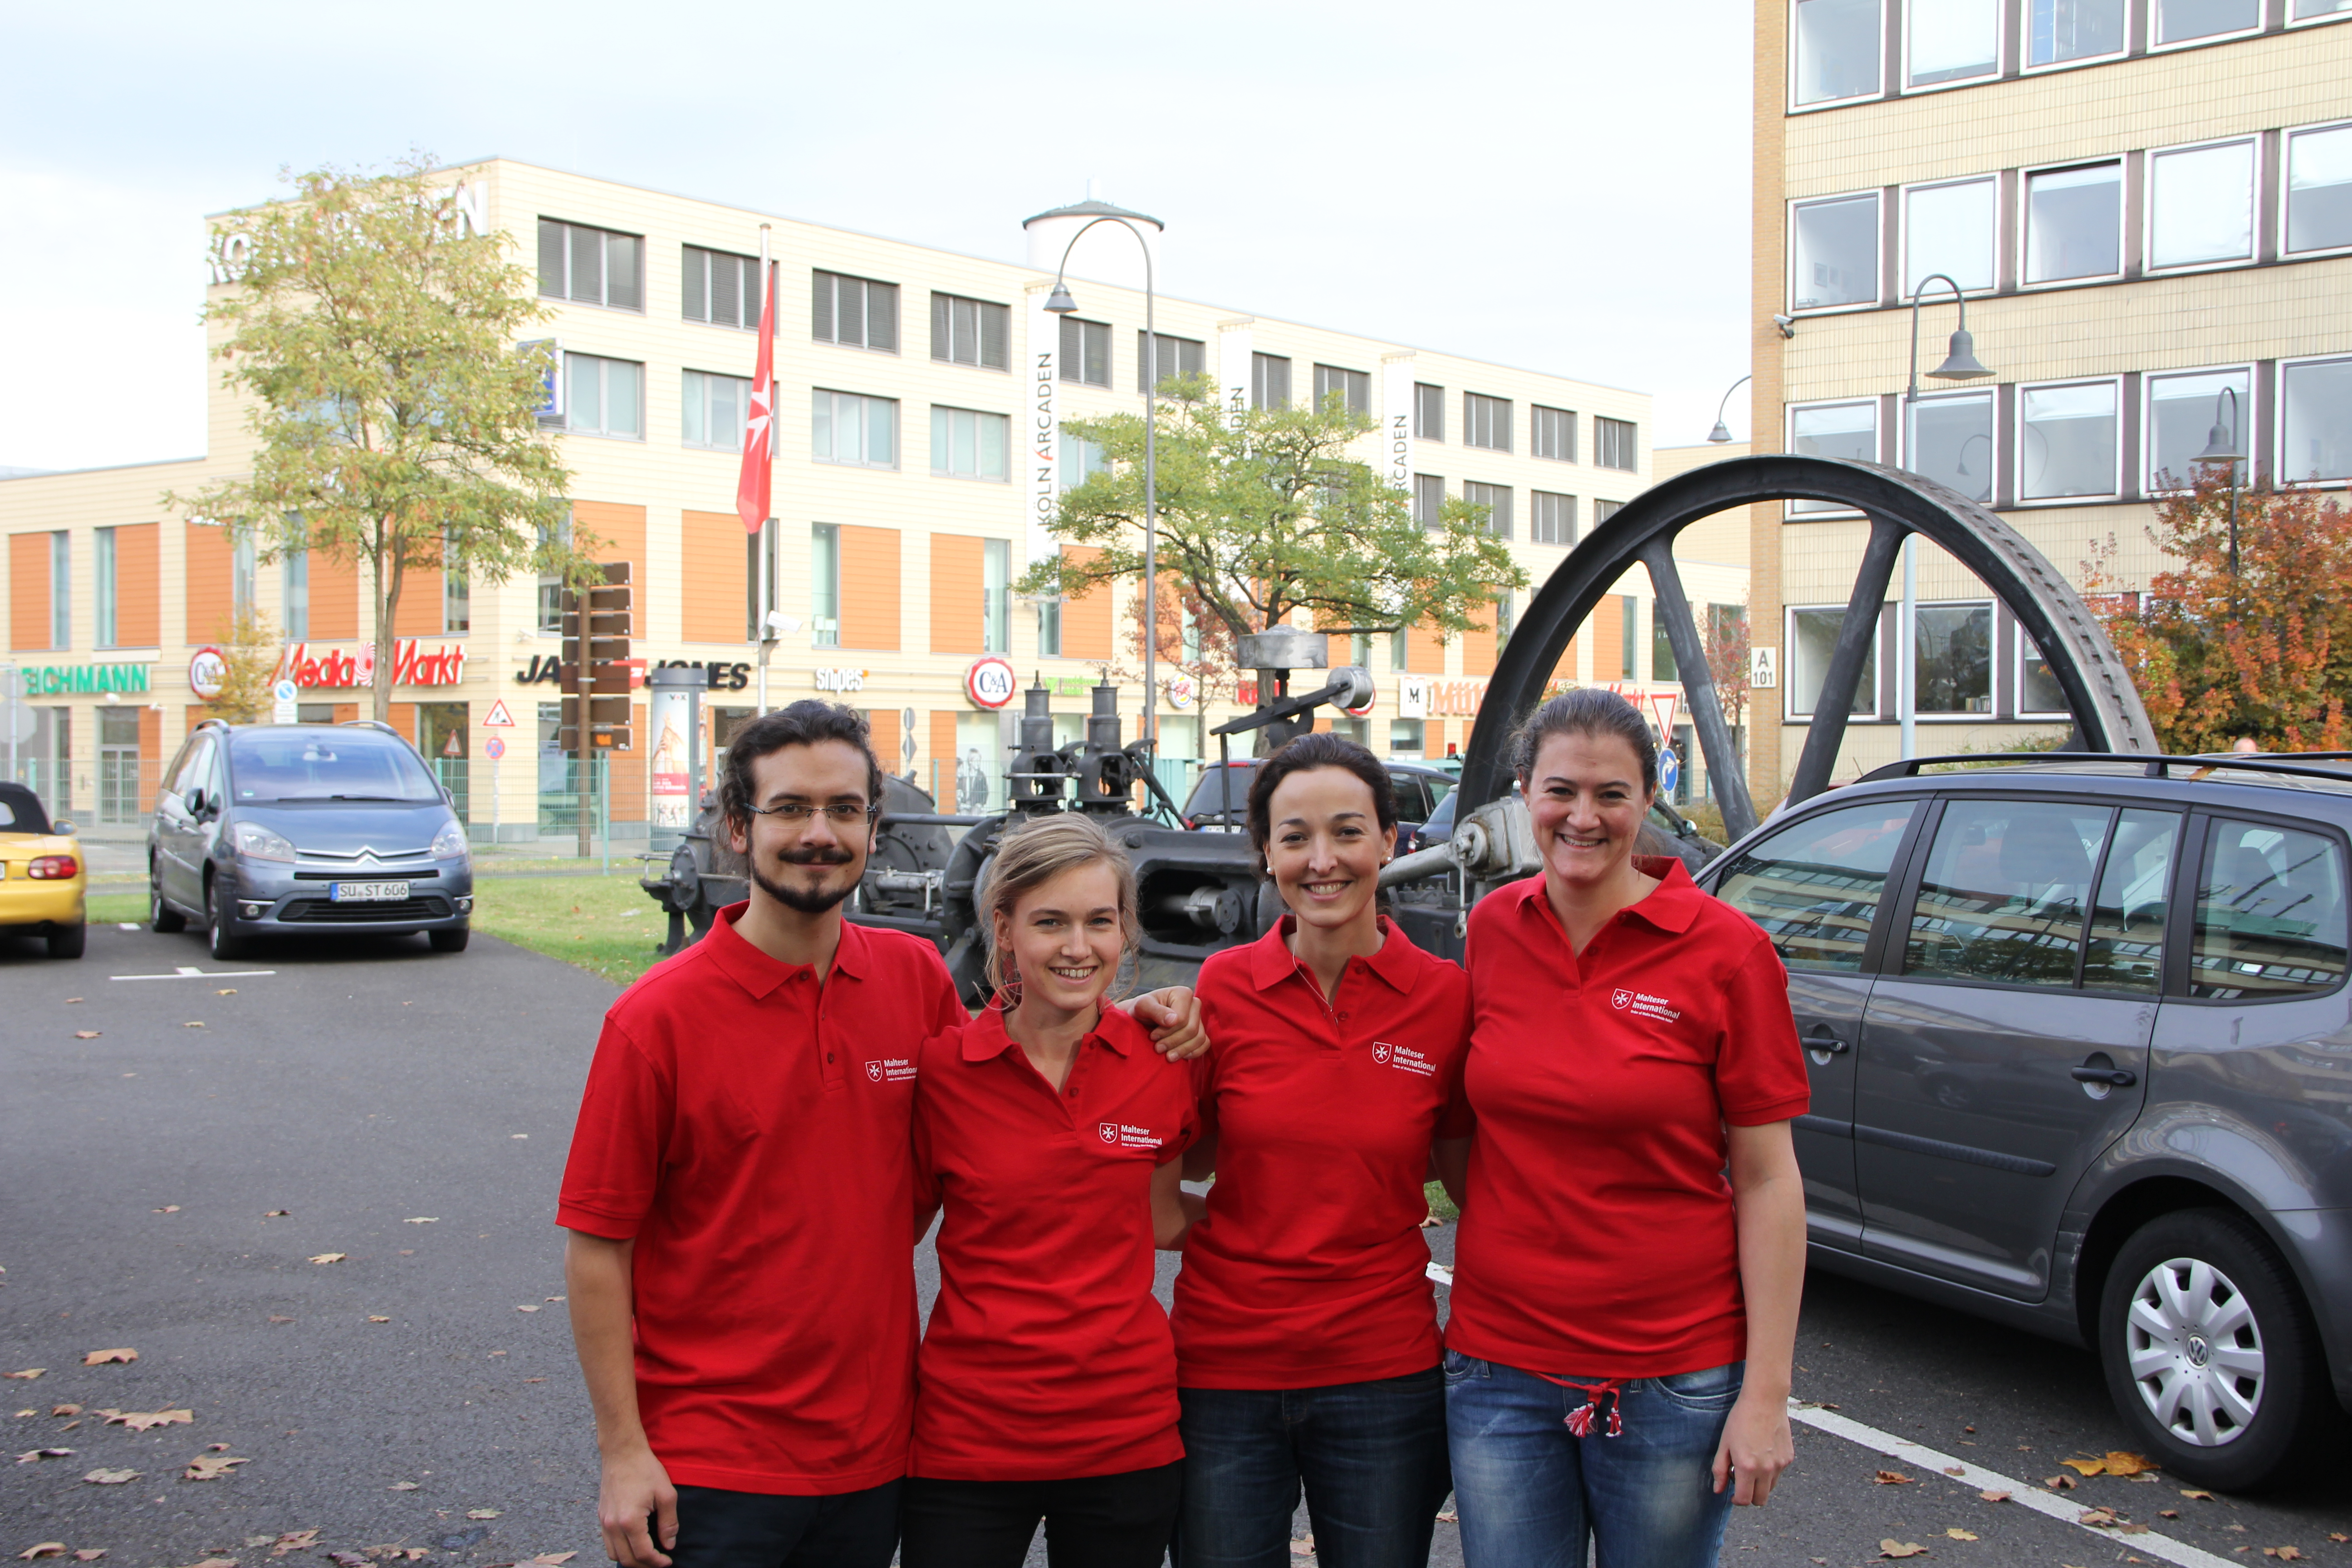 The team consists of a member from Spain, France, Germany, and Austria. Photo: Malteser InternationalThe team consists of a member from Spain, France, Germany, and Austria. Photo: Malteser International